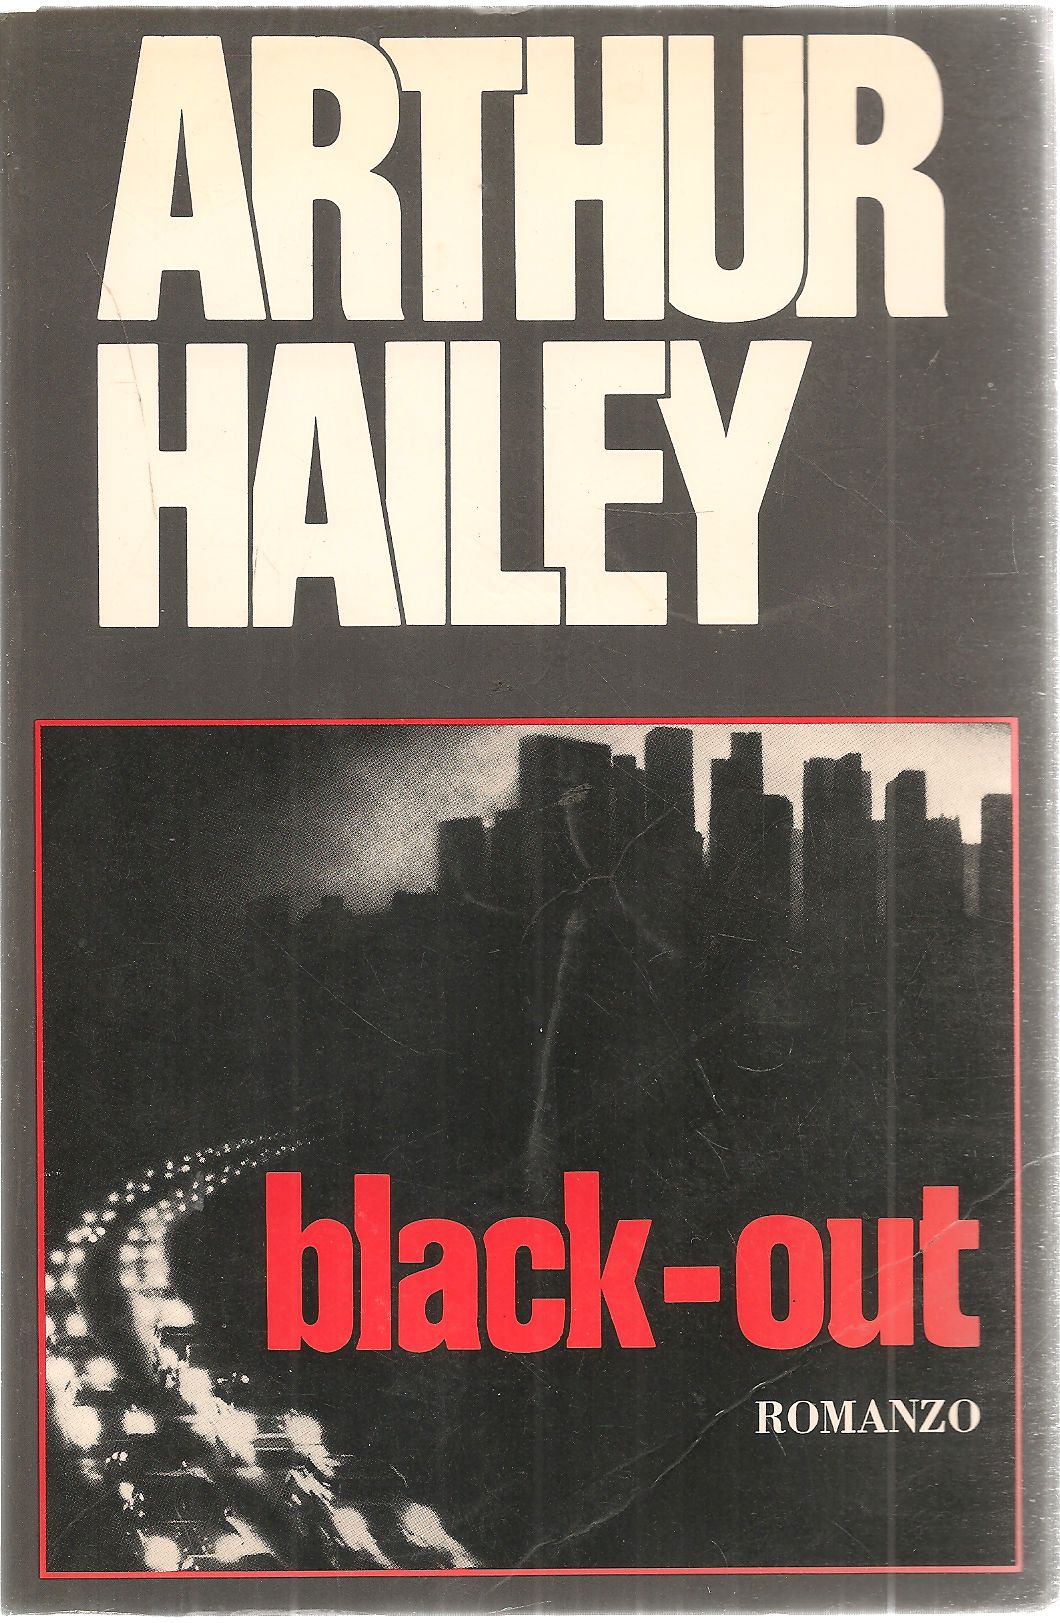 BLACK-OUT - ARTHUR HAILEY